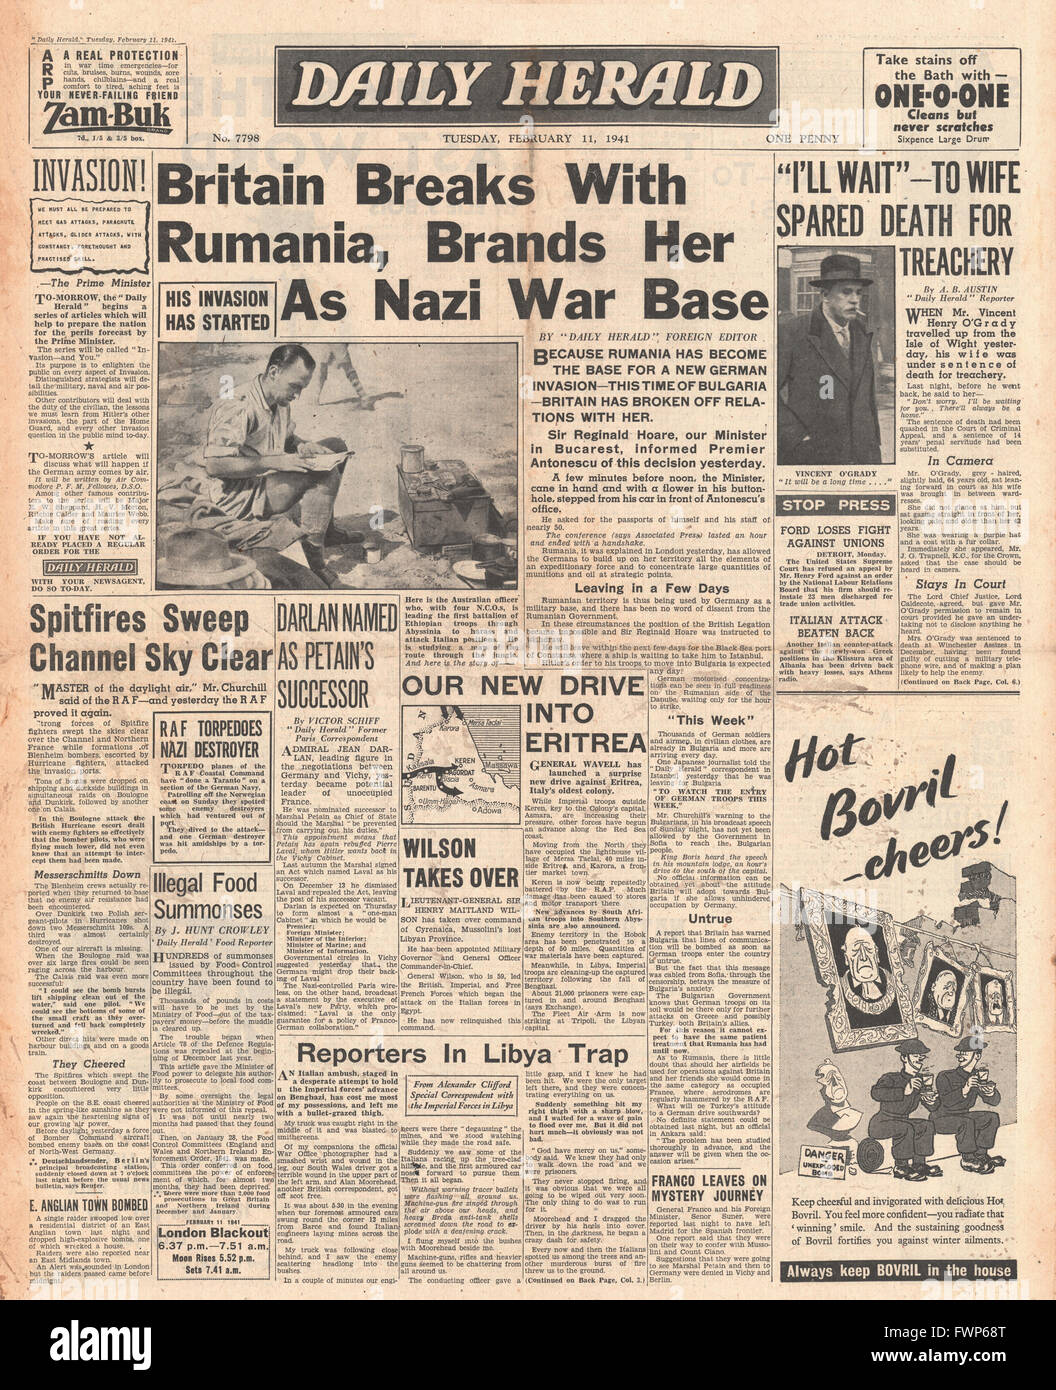 1941 front page Daily Herald Britain breaks relations with Romania and General Sir Henry Wilson becomes Military - Stock Image